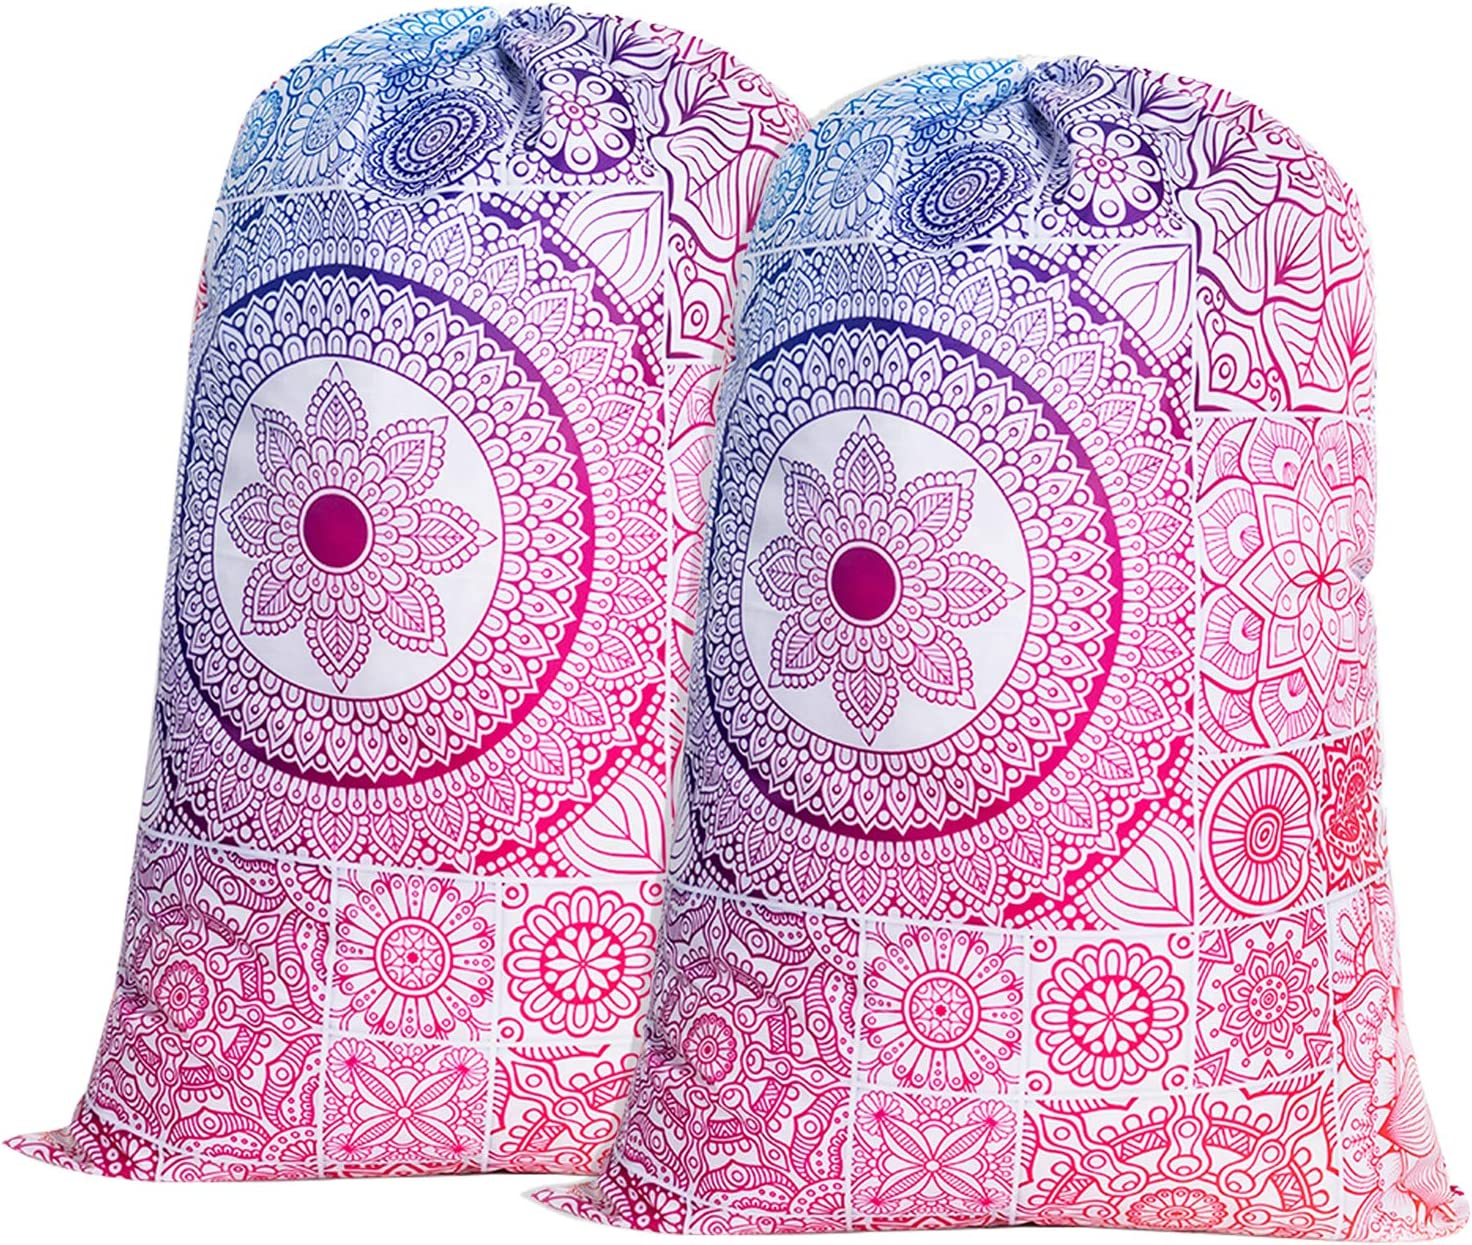 "Nidoul 2 Pack Extra Large Laundry Bag, Mandala Heavy Duty Travel Laundry Bag, Drawstring Closure Dirty Clothes Bag, Durable Rip-Stop Bag for Camp Dorm, Machine Washable 24"" x 36"""